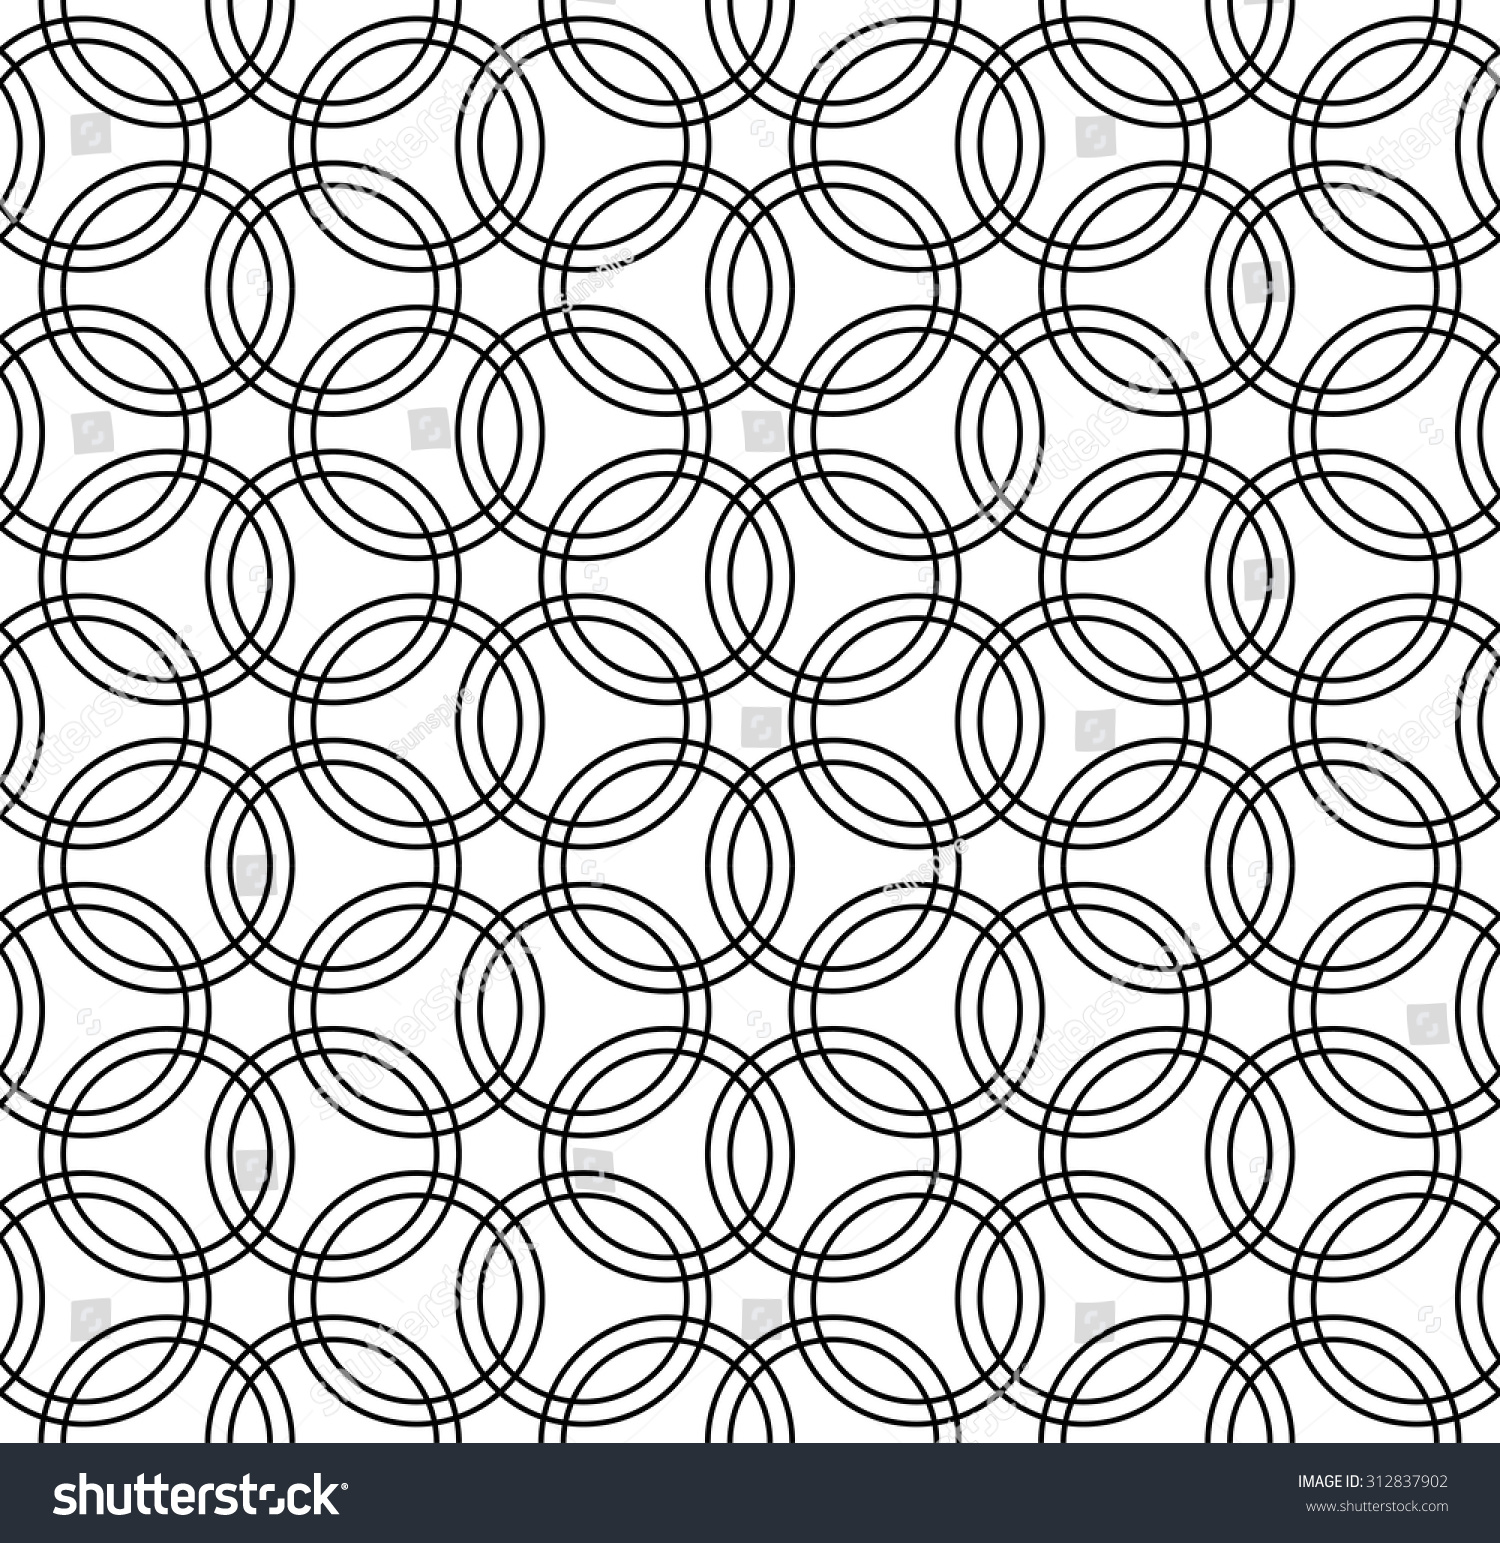 White bed sheet texture seamless - Vector Modern Seamless Pattern Connected Circles Black And White Textile Print Stylish Background